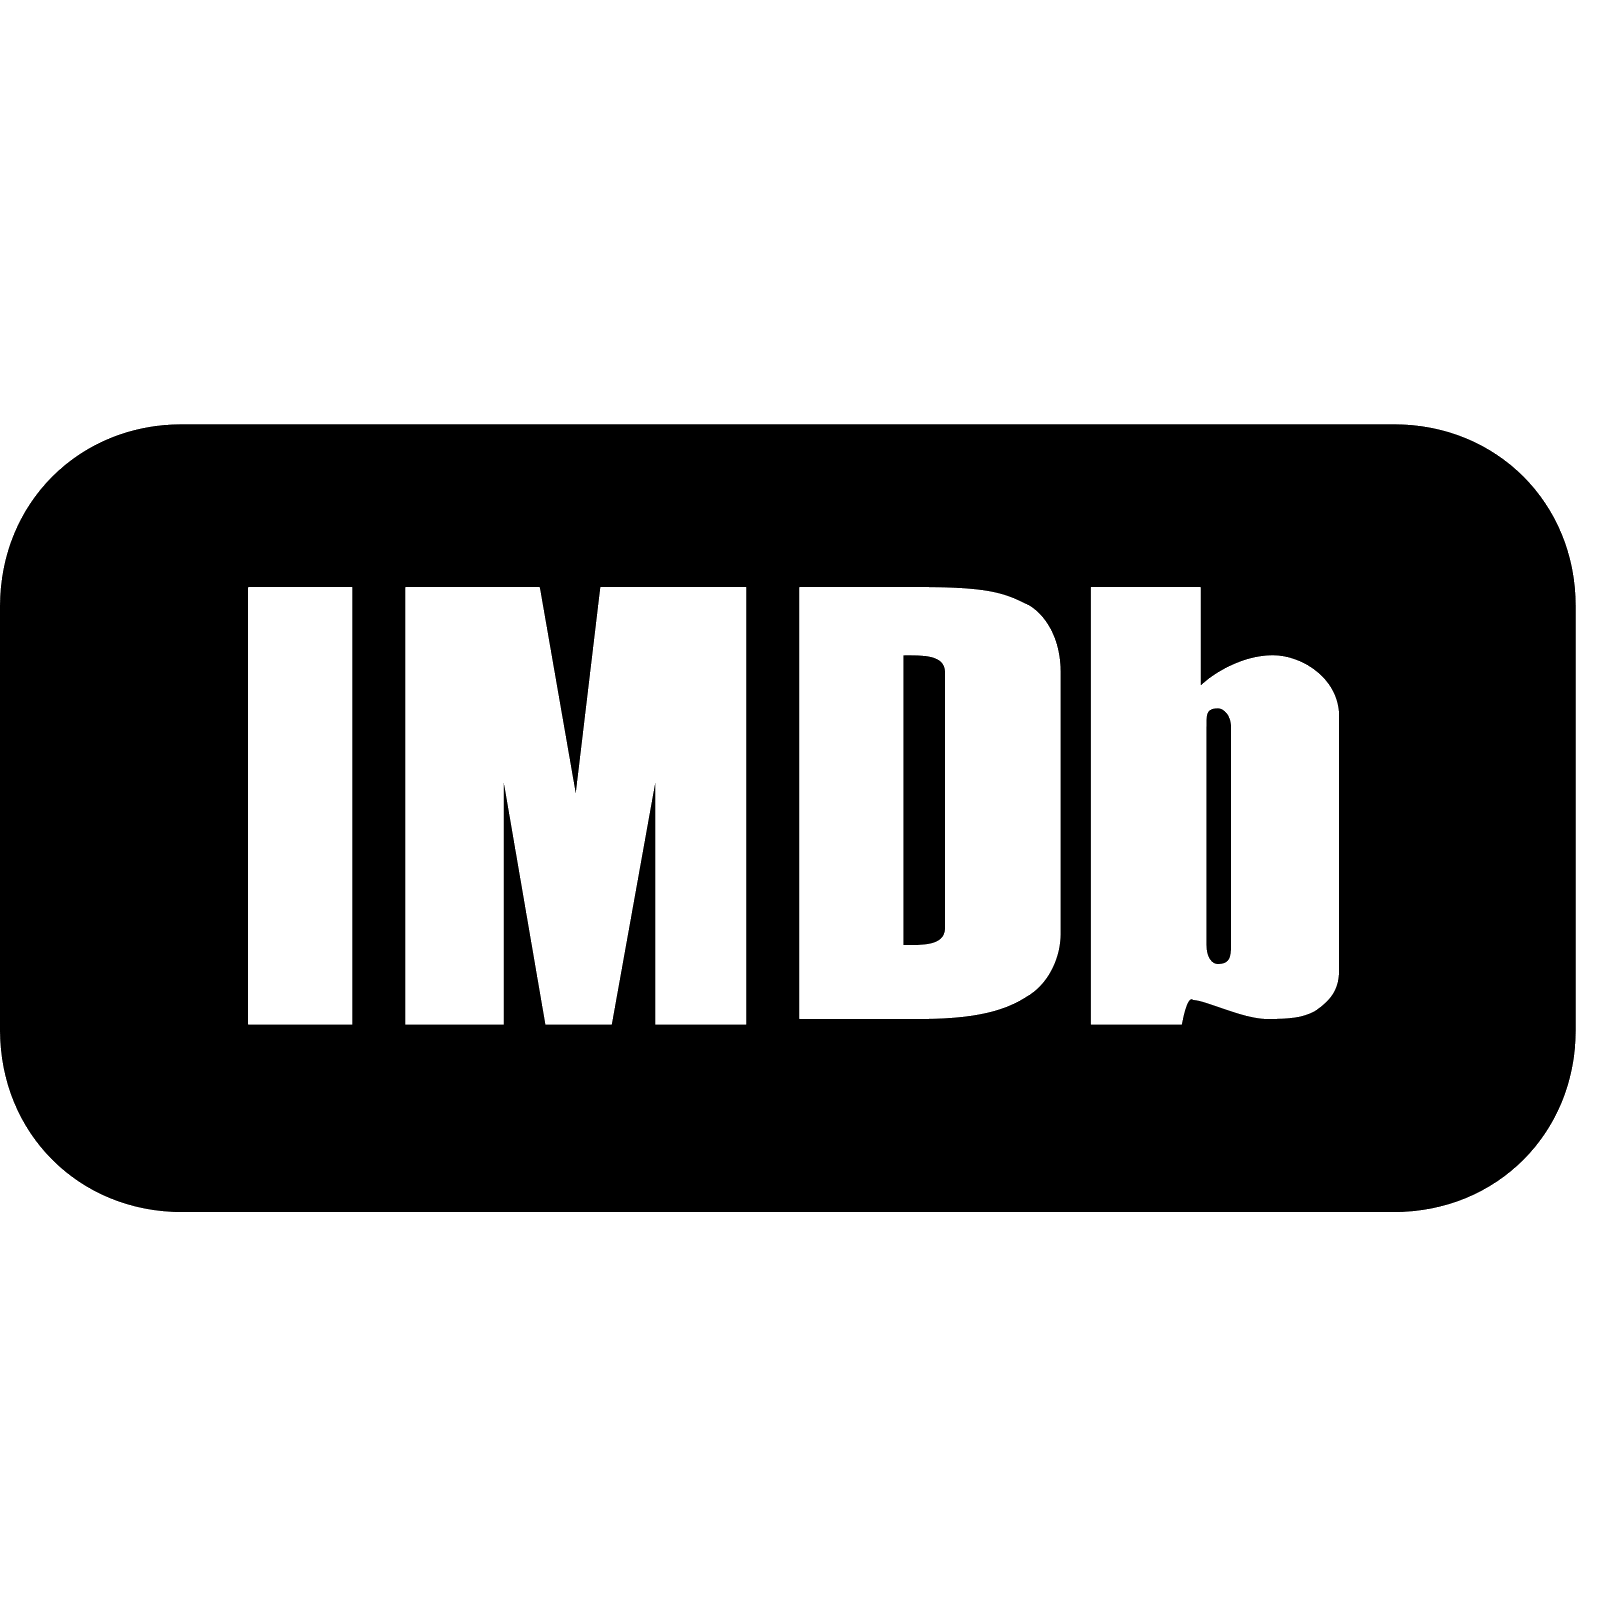 Imdb Logo Png, png collections at sccpre.cat.